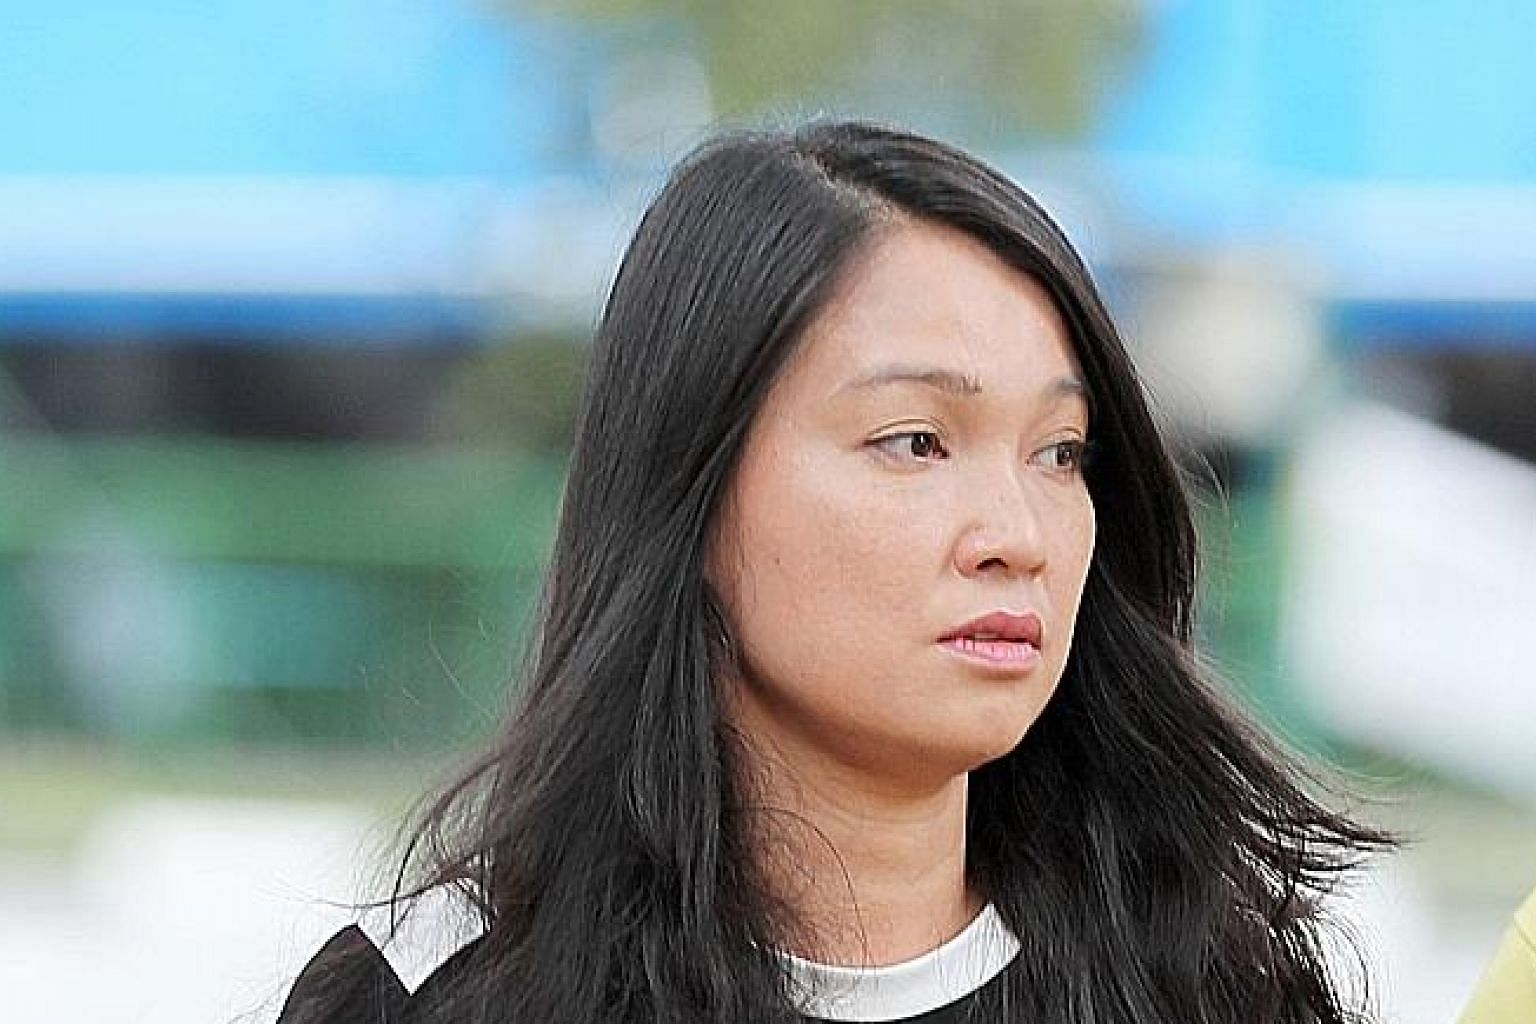 Louise Lai Pei Hsien, 43, pleaded guilty to five charges of cheating.